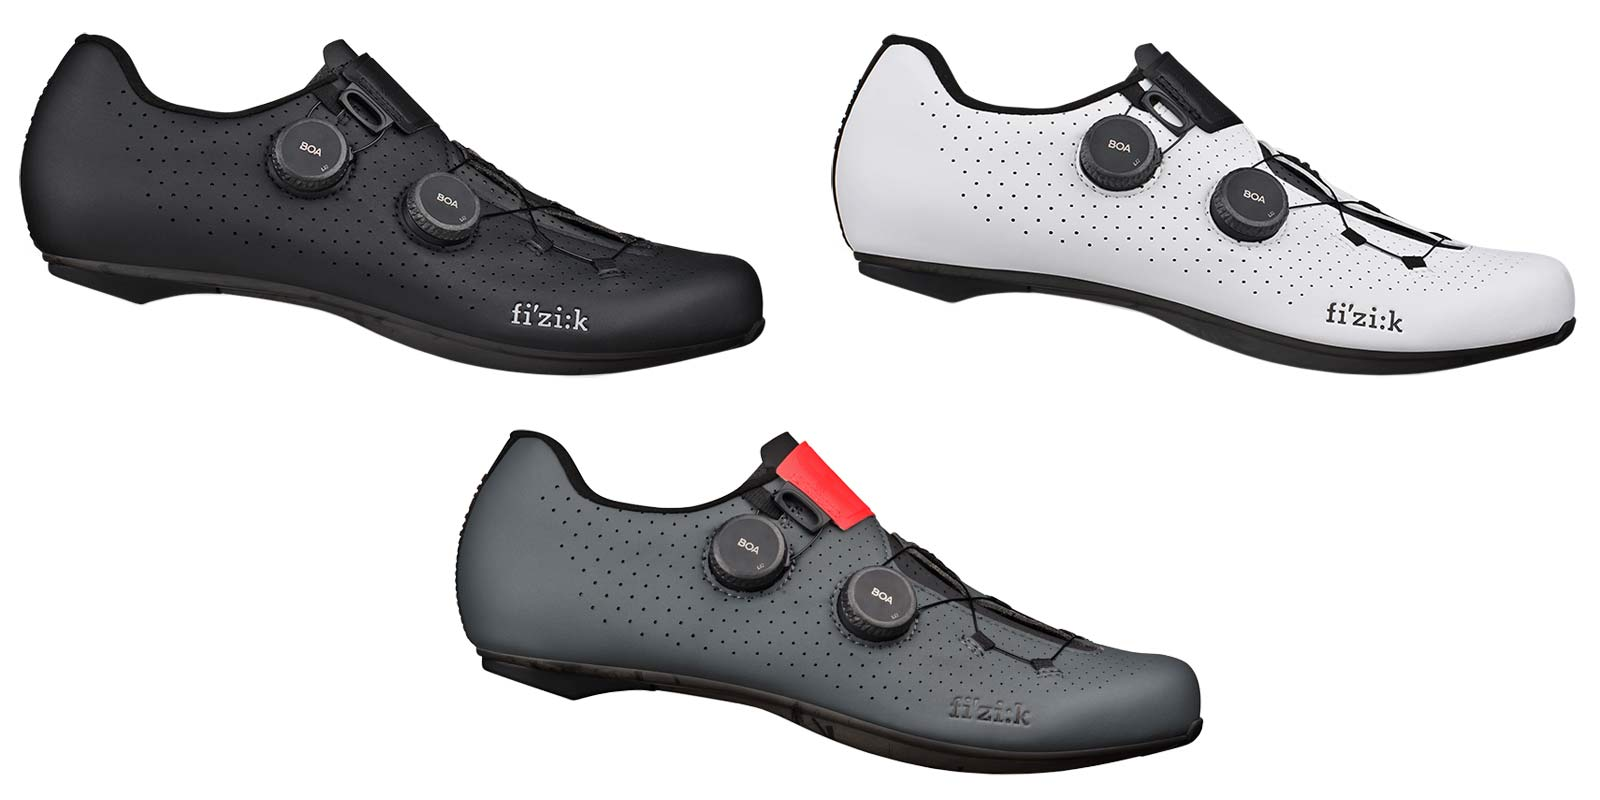 Fizik-Vento-Infinito-Carbon-2-road-shoes_lightweight-breathable-stiff-microtex-or-knit-road-racing-shoes_microtex-colors.jpg